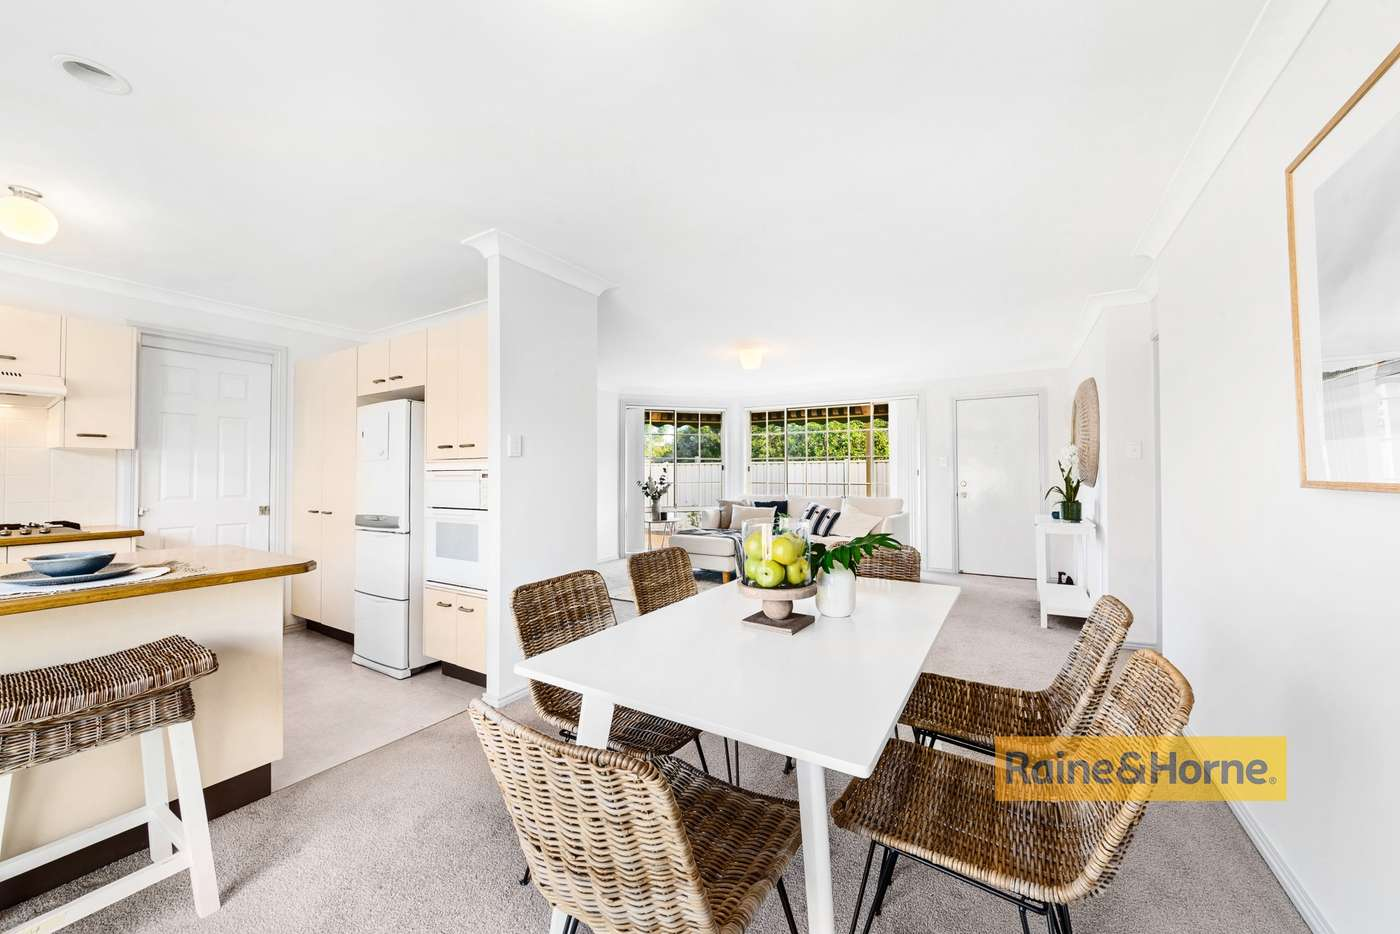 Fifth view of Homely villa listing, 3/31 Allfield Road, Woy Woy NSW 2256